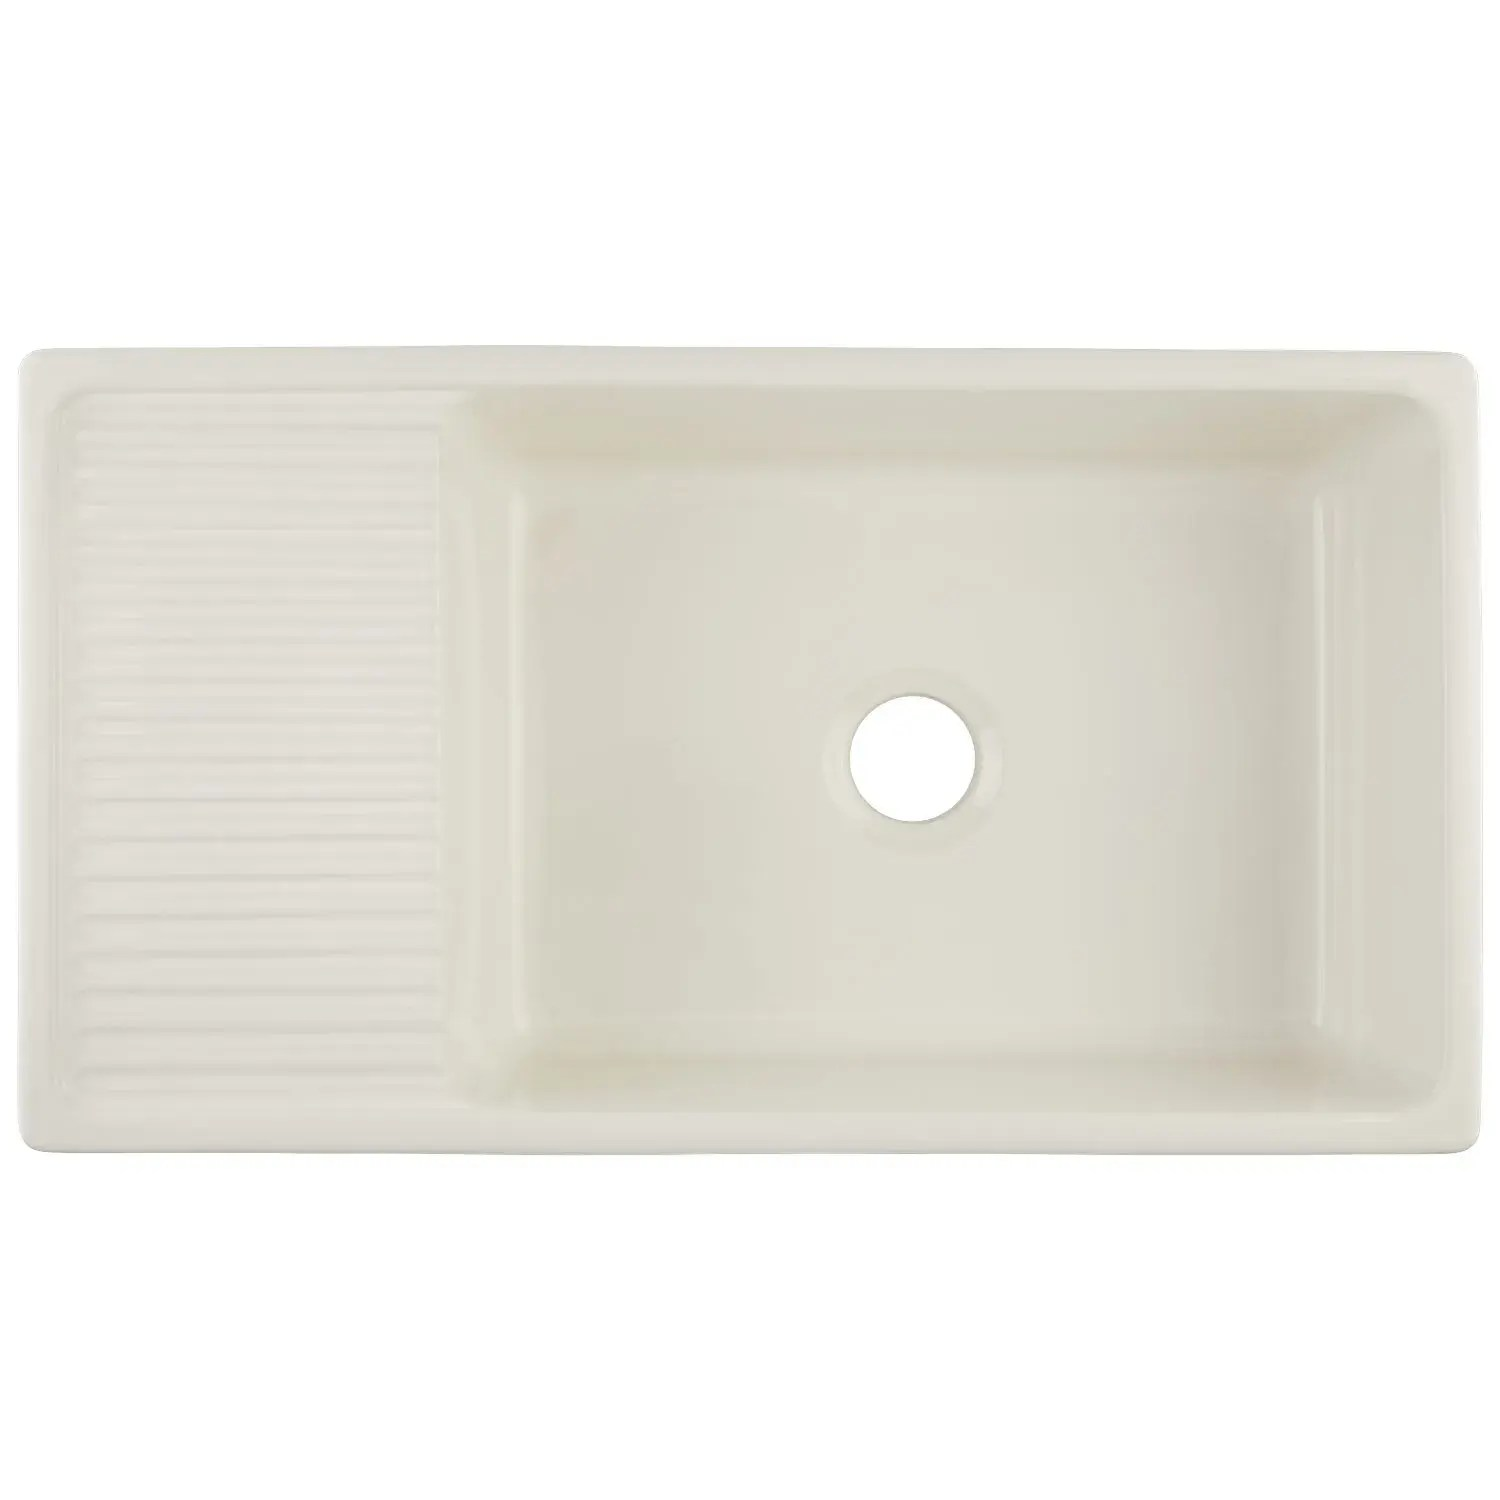 36 gallo fireclay farmhouse sink with drainboard biscuit